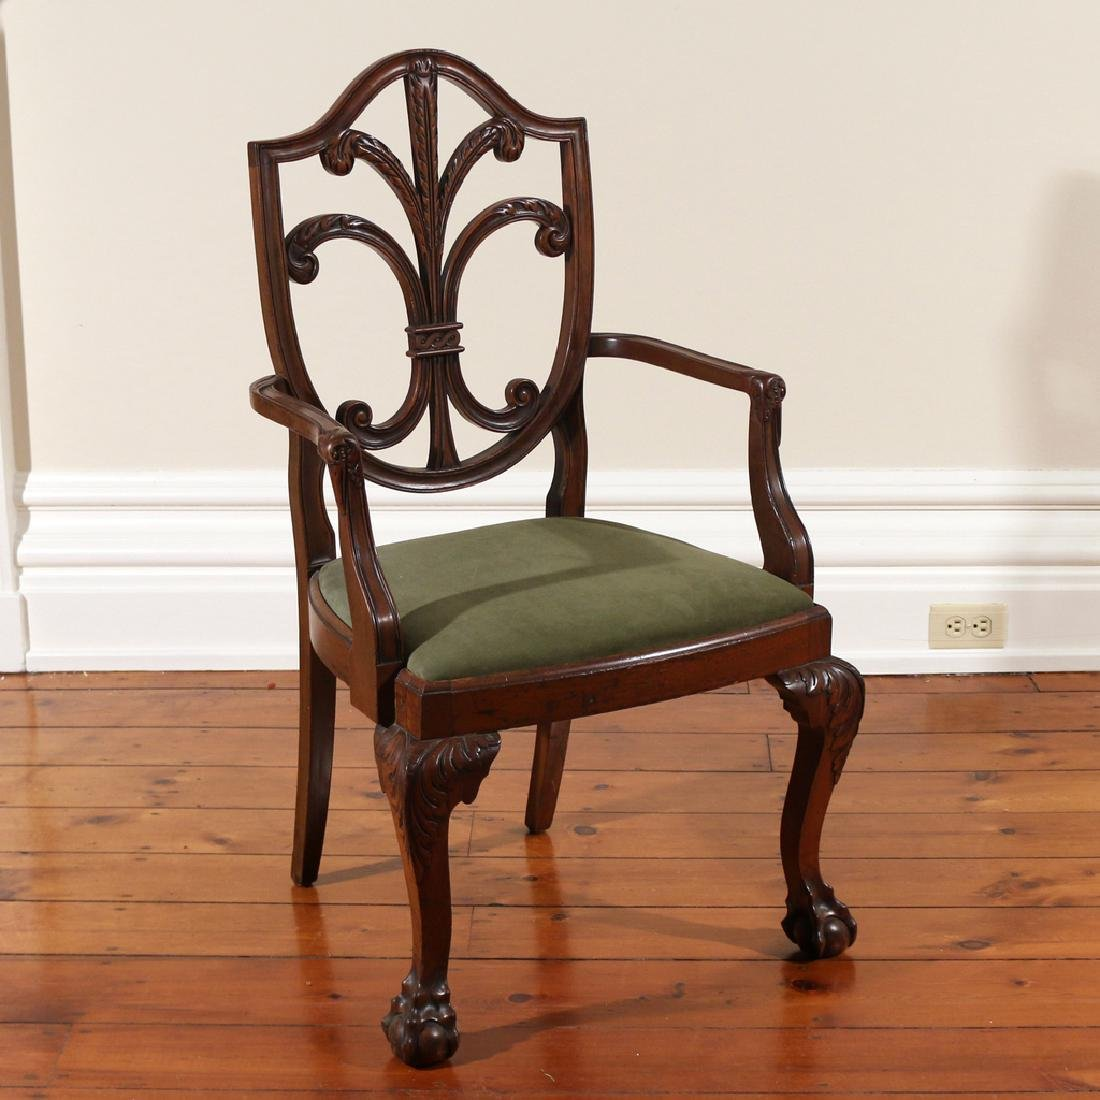 CHIPPENDALE-STYLE MAHOGANY ARMCHAIR